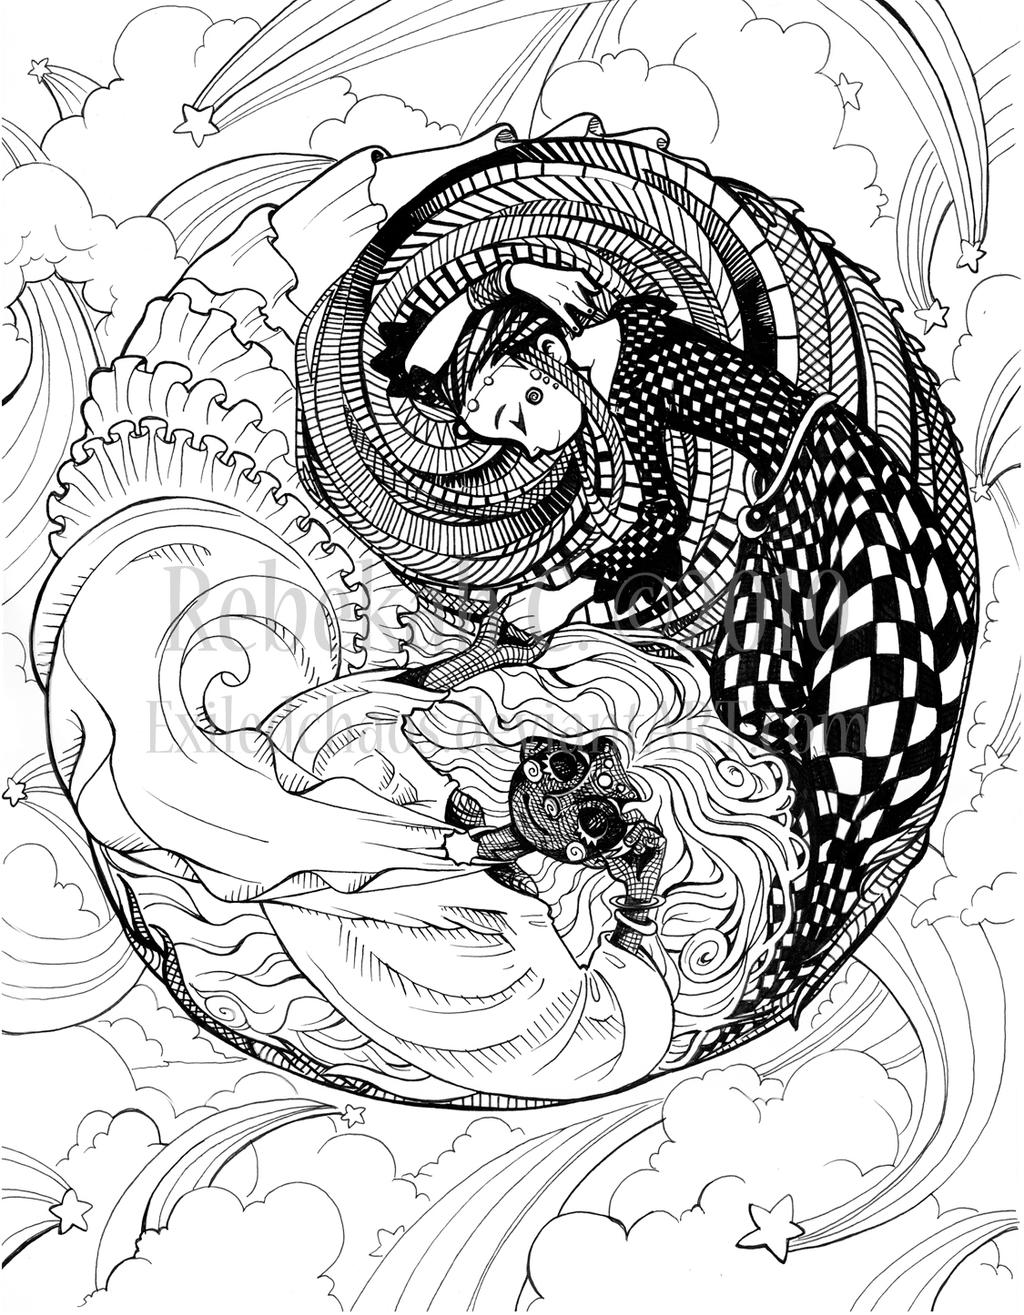 Herron Coloring Book Yin Yang By ExiledChaos On DeviantArt